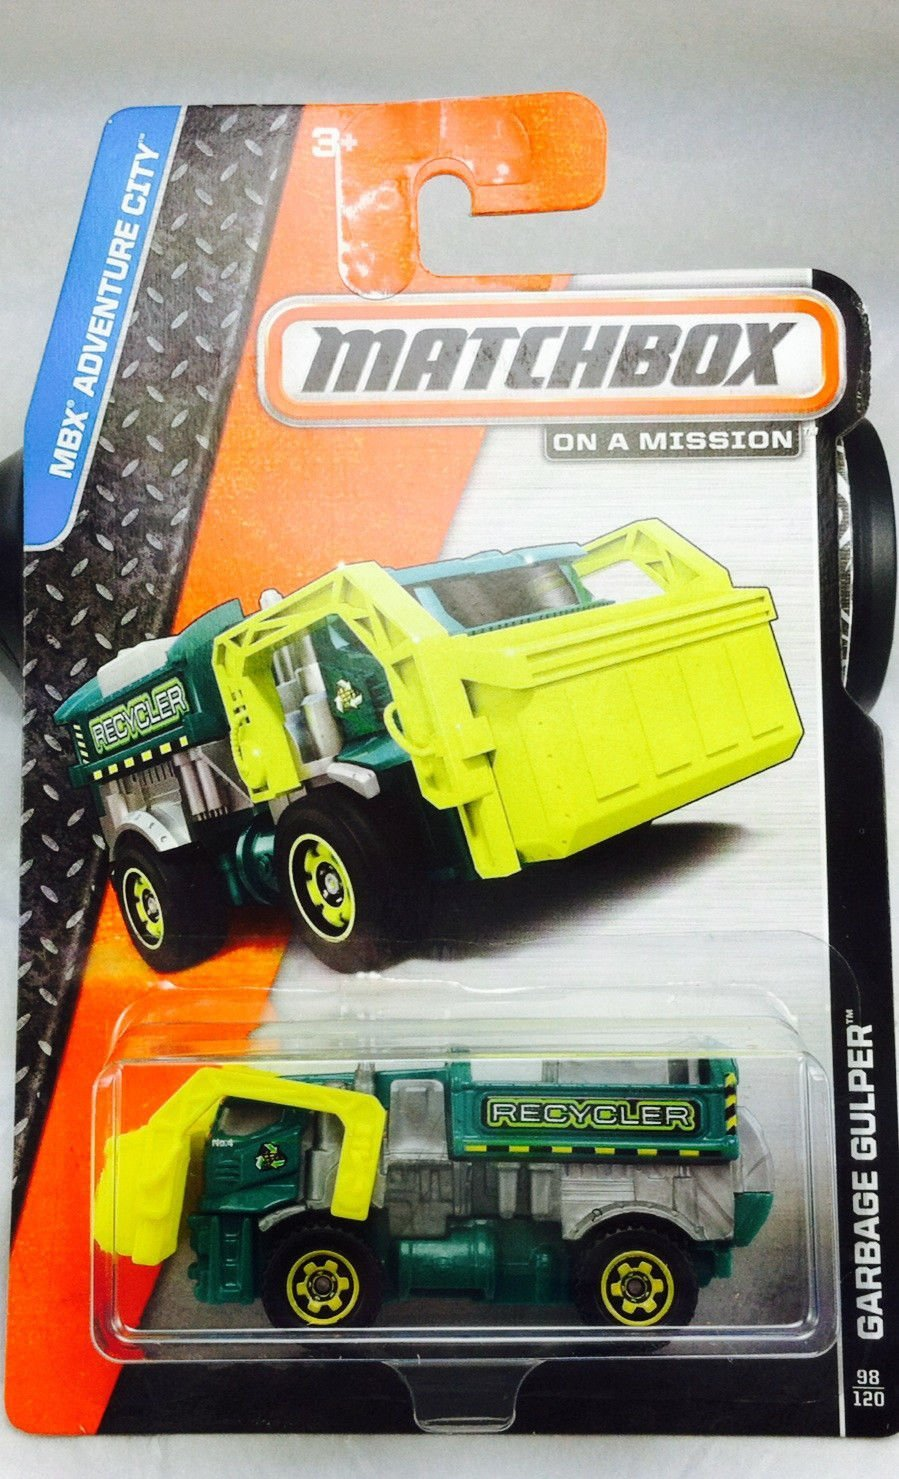 2014 MBX Adventure City Garbage Gulper (Garbage Truck) 98 120, Green and Yellow, match box... by